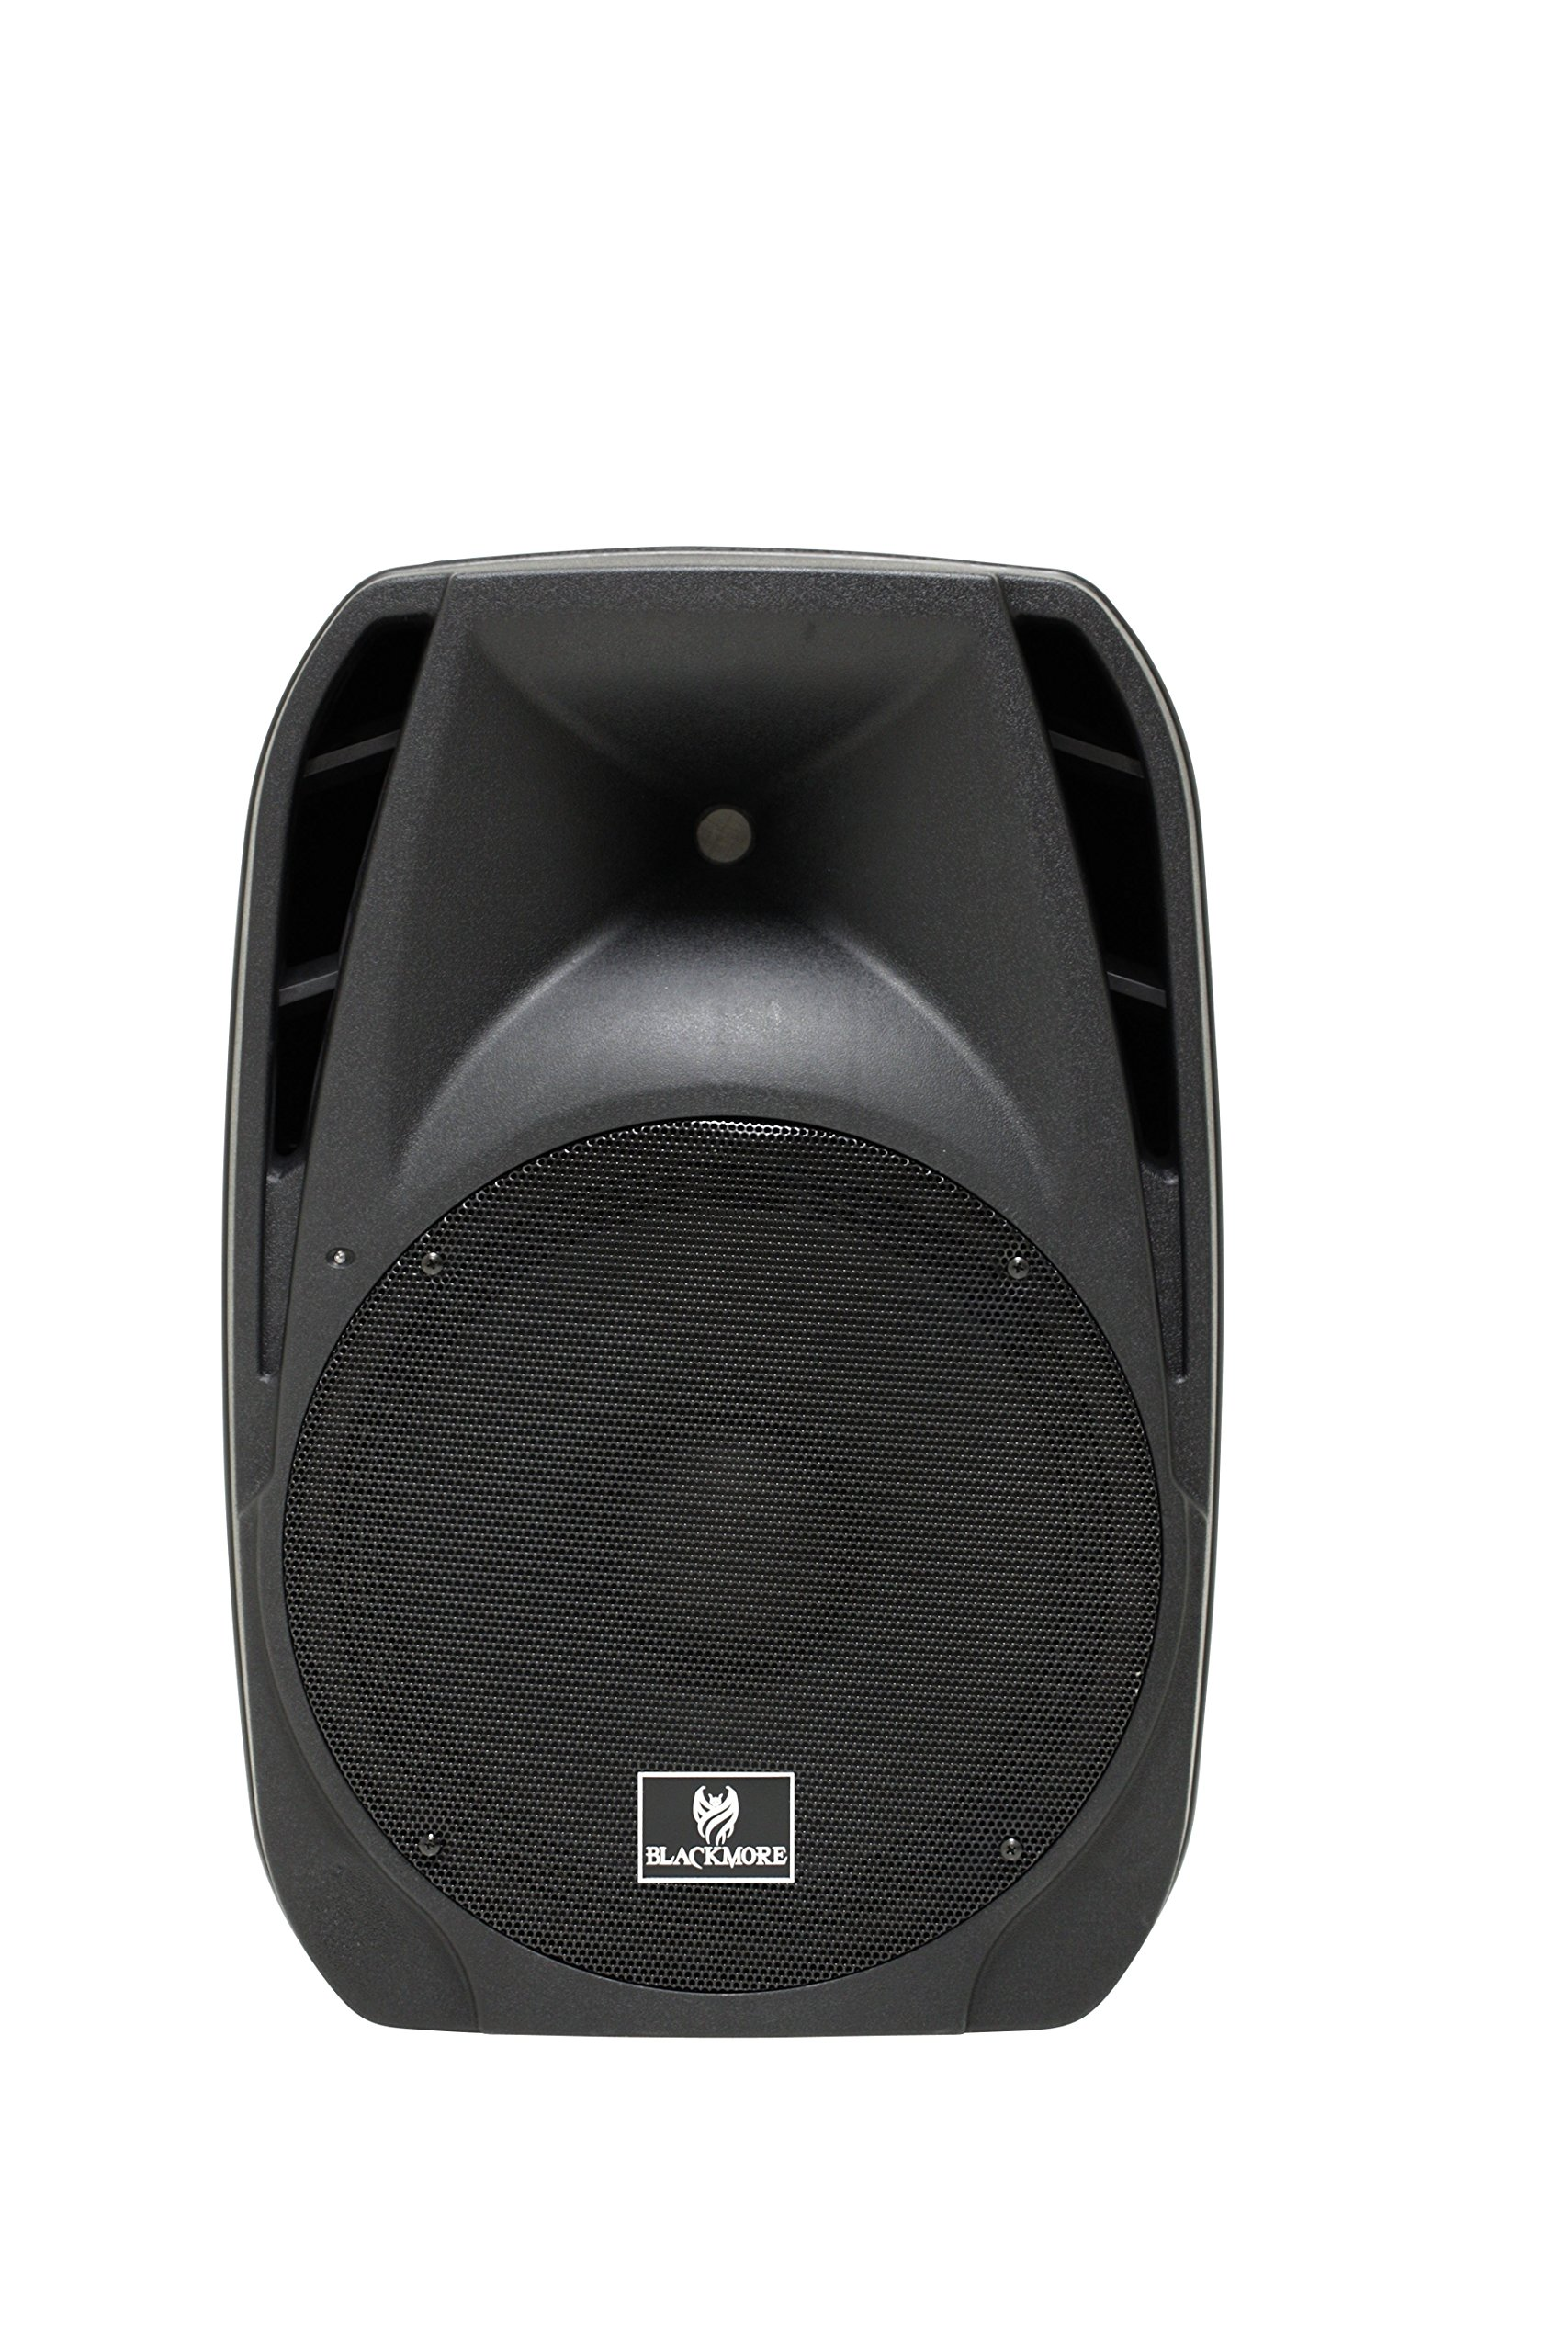 Blackmore DJ System BJP-15BT DJ Powered Amplified PA 15'' Speaker